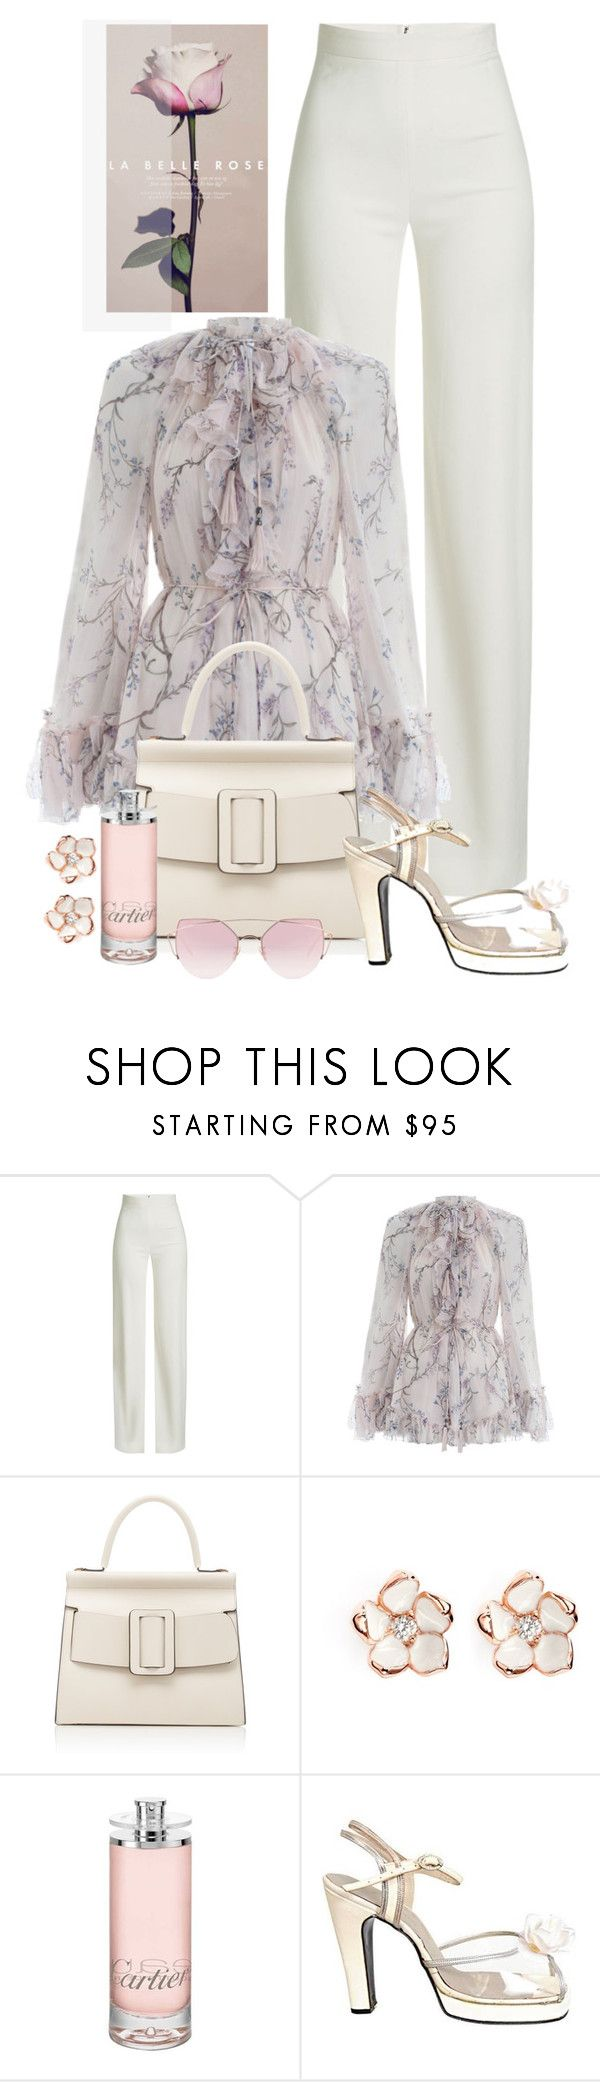 """La Belle Rose For You♥"" by nicolesynth ❤ liked on Polyvore featuring Brandon Maxwell, Zimmermann, Boyy, Shaun Leane, Cartier, Terry de Havilland and LMNT"